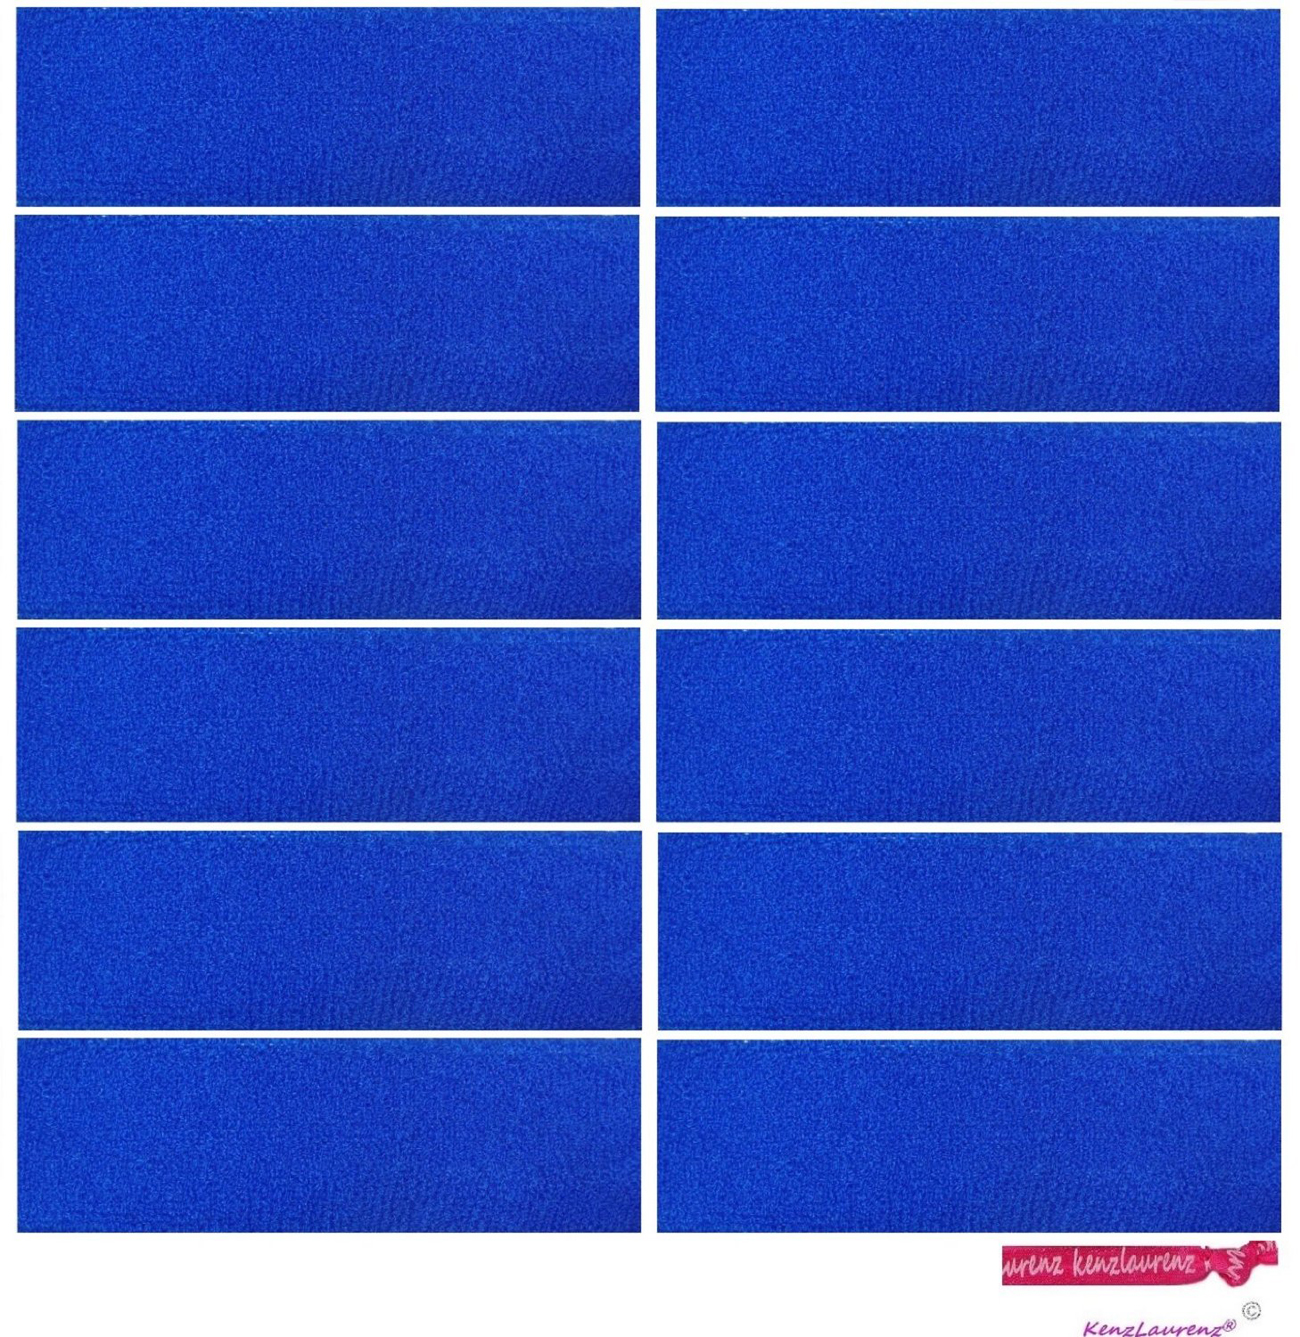 Kenz Laurenz Sweatbands 12 Terry Cotton Sports Headbands Sweat Absorbing Head Bands Blue